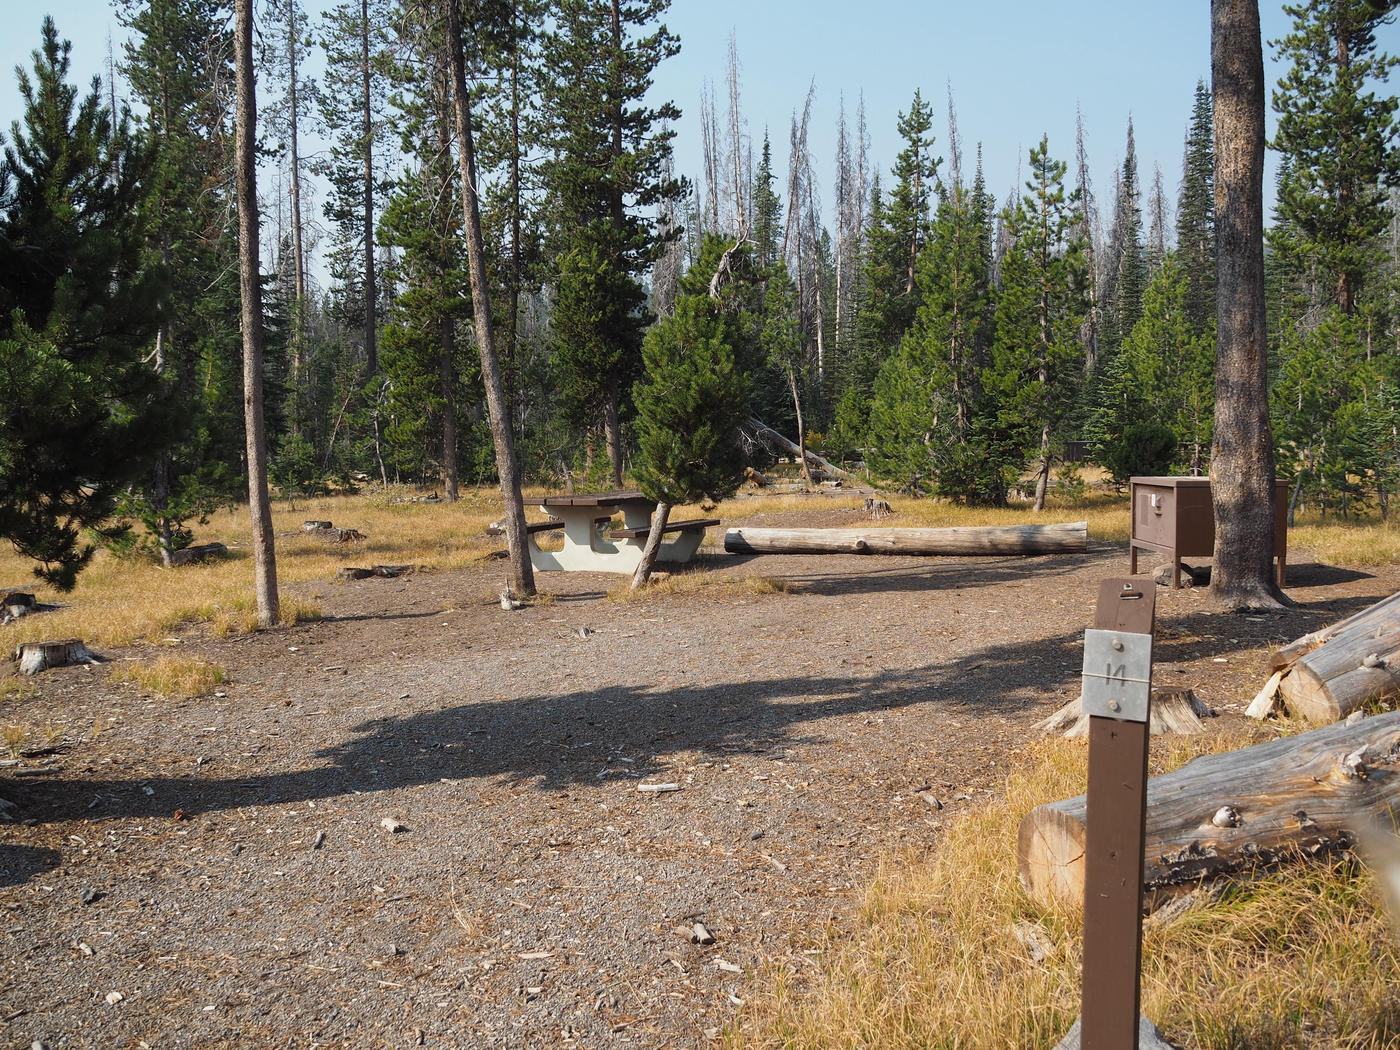 Lost Creek Campsite #14Campsite 14 is in the inner circle.